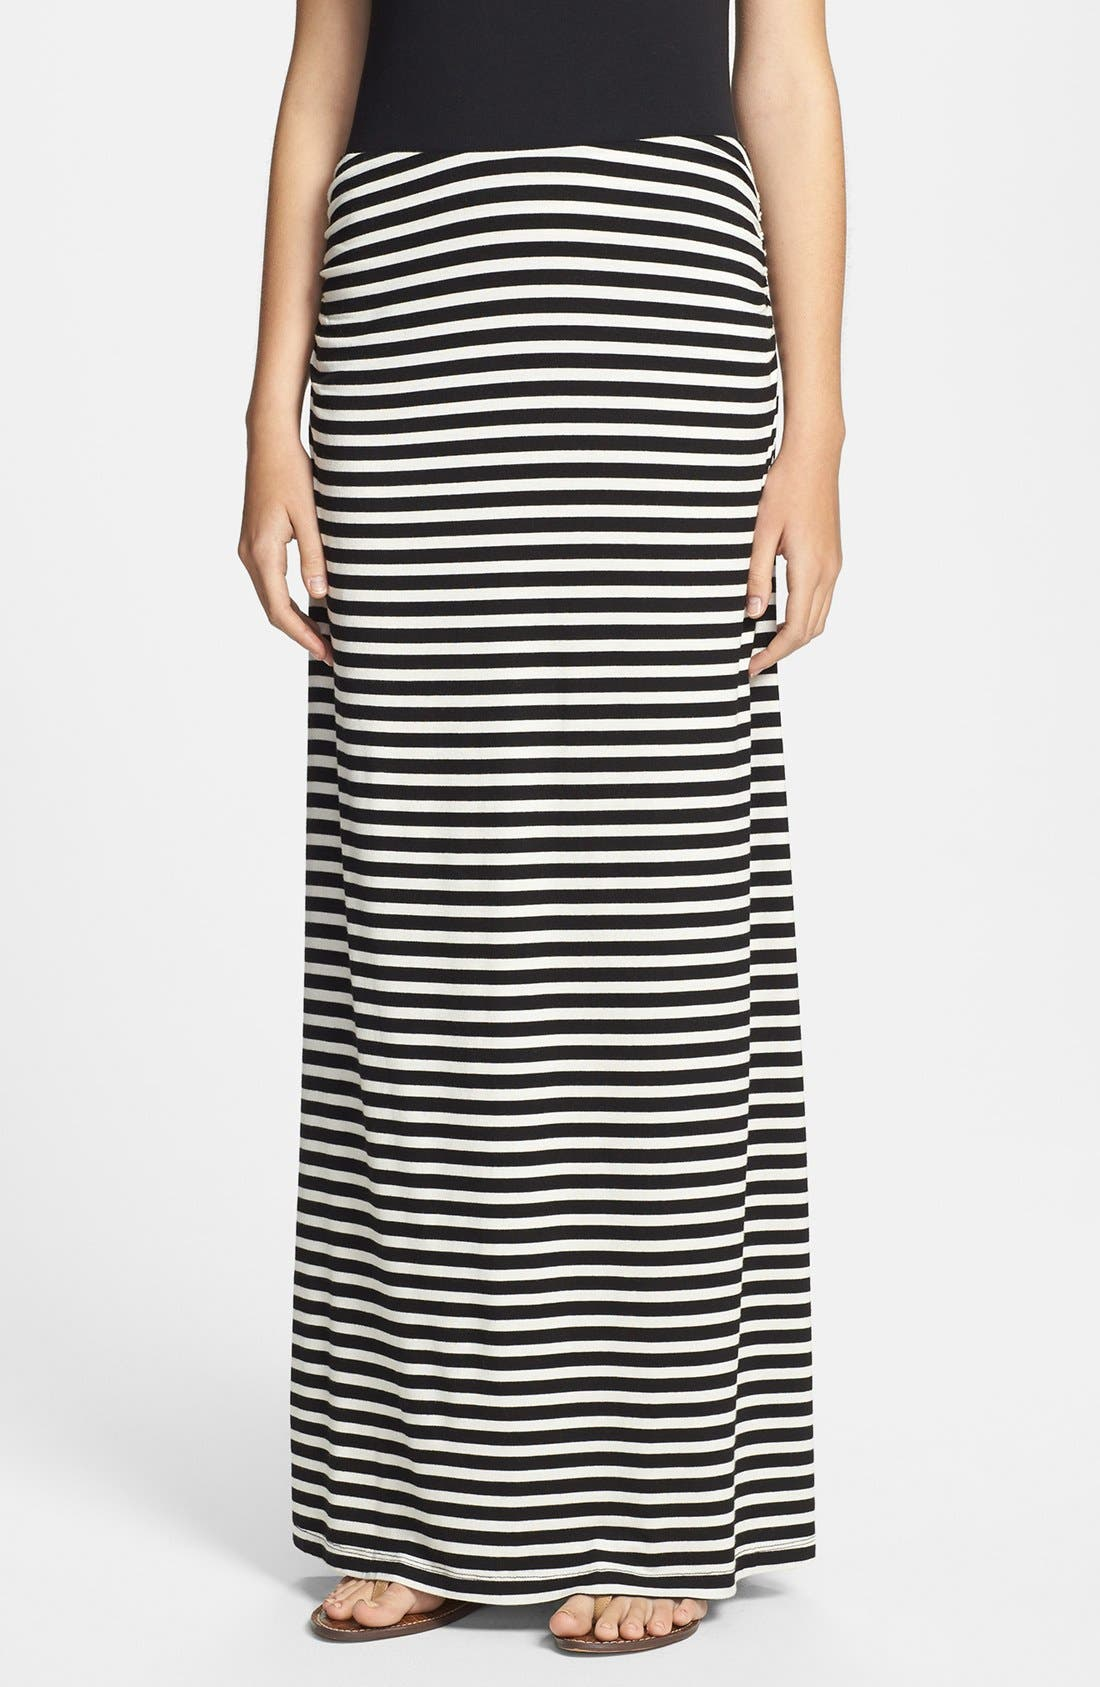 Alternate Image 1 Selected - Caslon® Convertible Maxi Skirt (Regular & Petite)